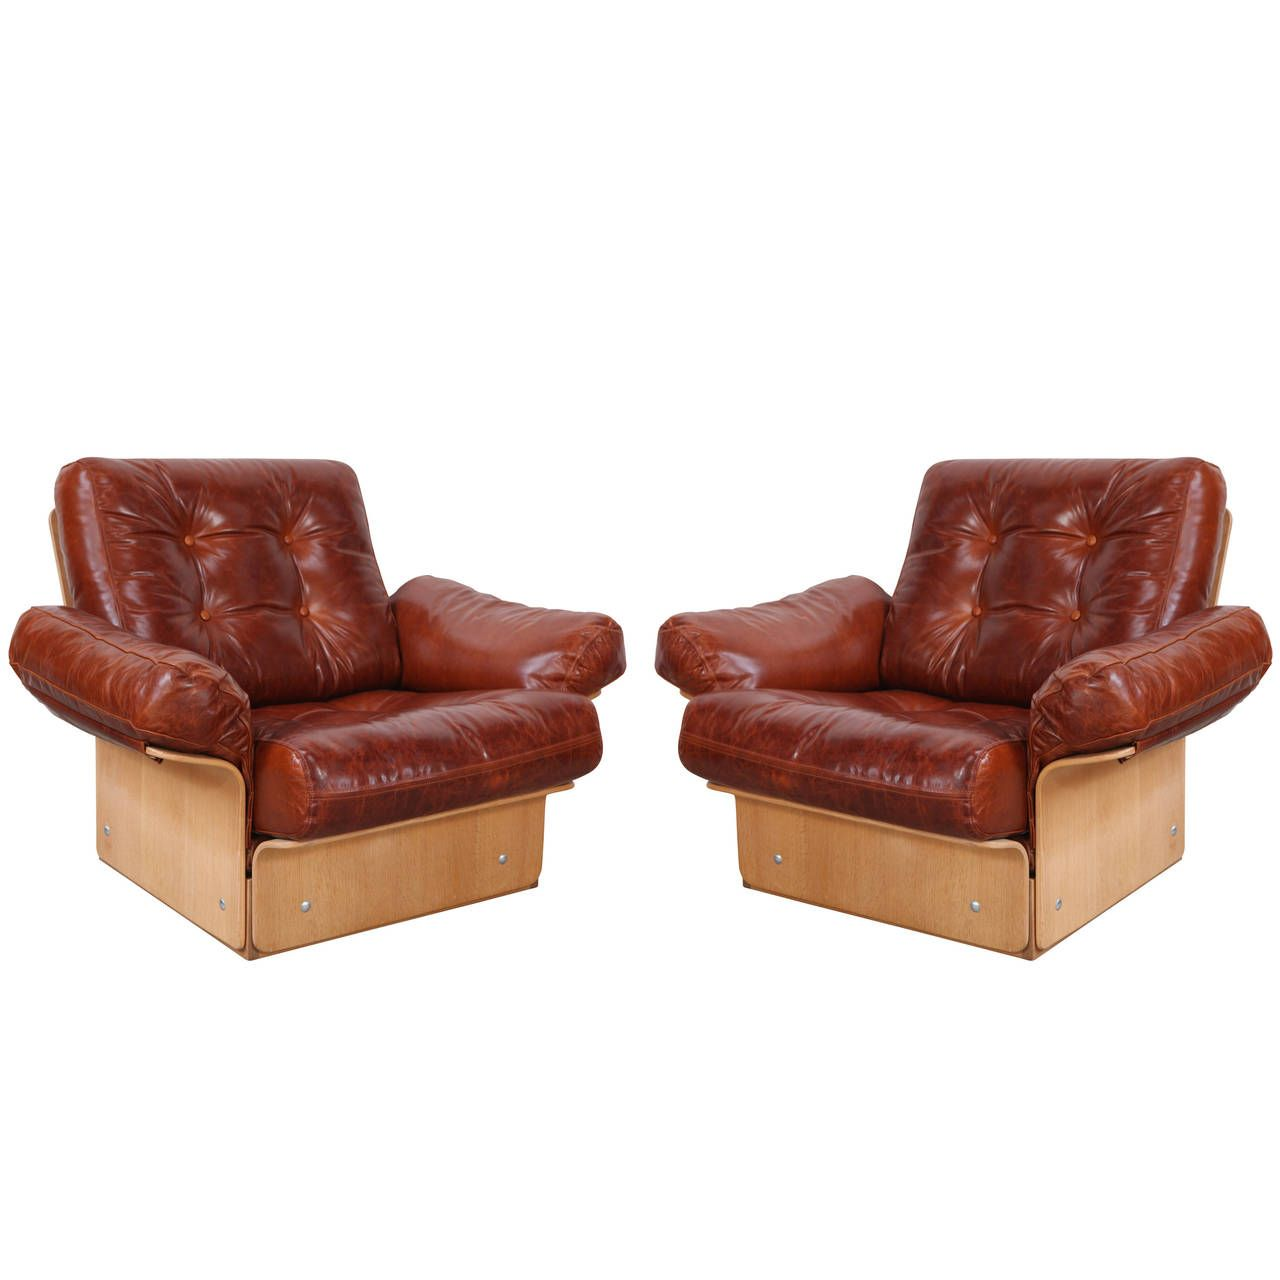 Pair of Danish Club Chairs   From a unique collection of antique and modern club chairs at https://www.1stdibs.com/furniture/seating/club-chairs/